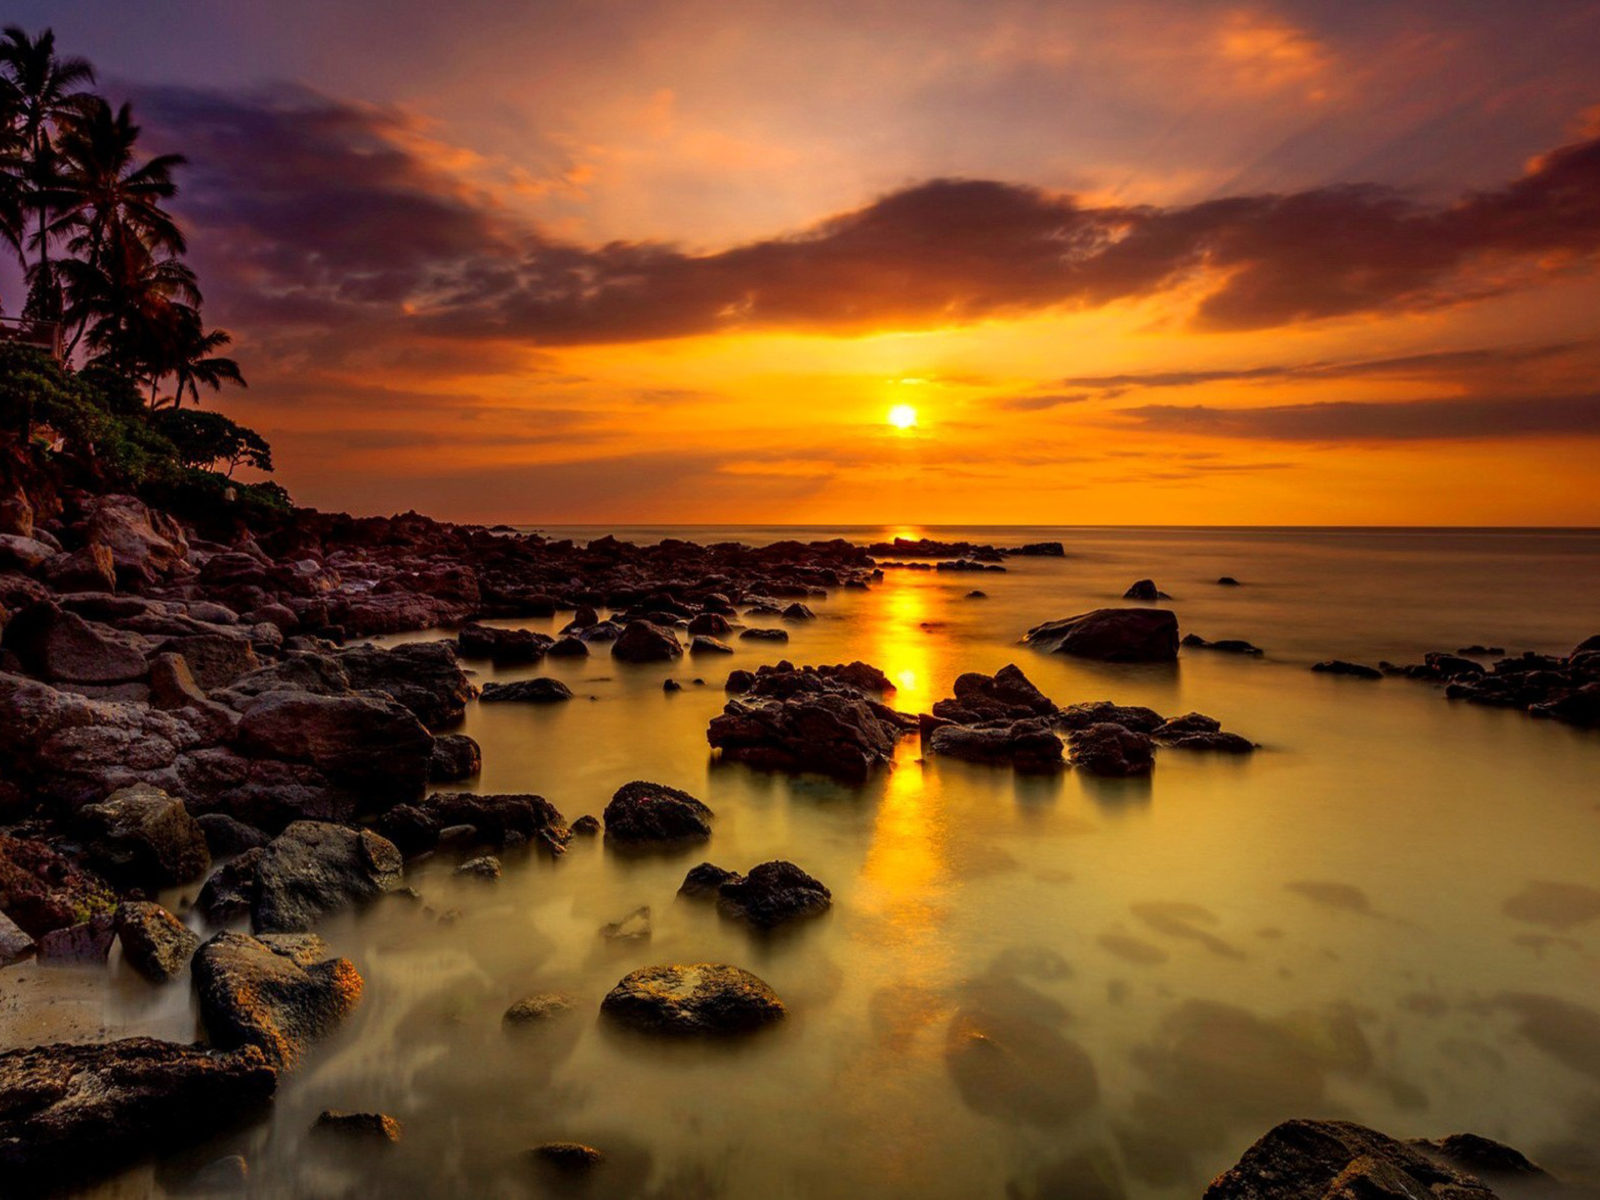 Nice Wallpaper For Iphone 5 Sunset Tropical Sea Coast Palm Rocks Stones Sky With